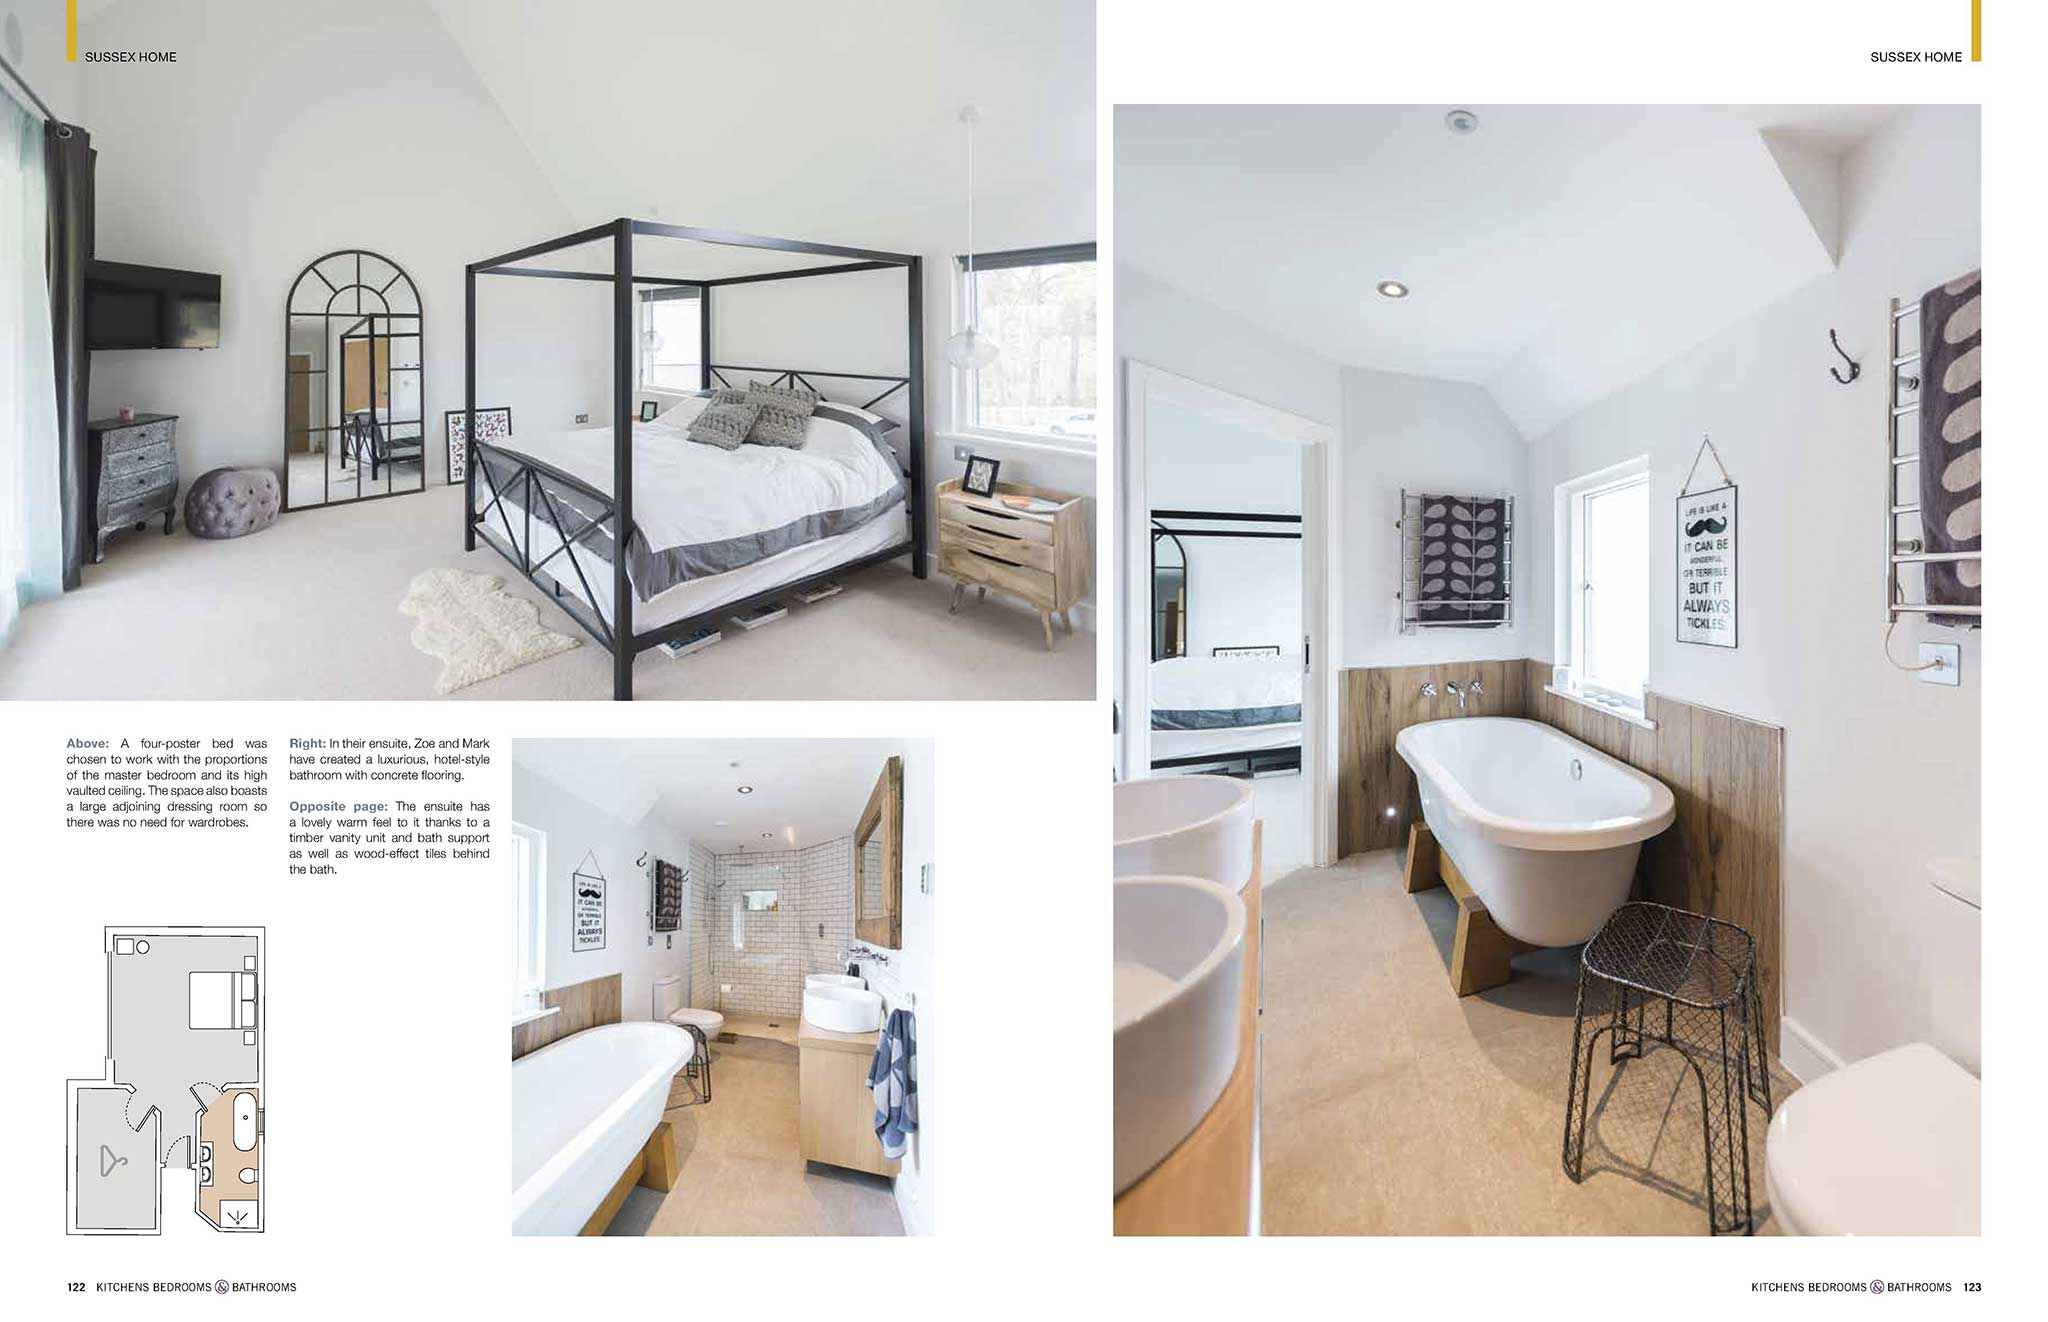 kitchen bedroom and bathrrom interior photographer gosia grant photography36